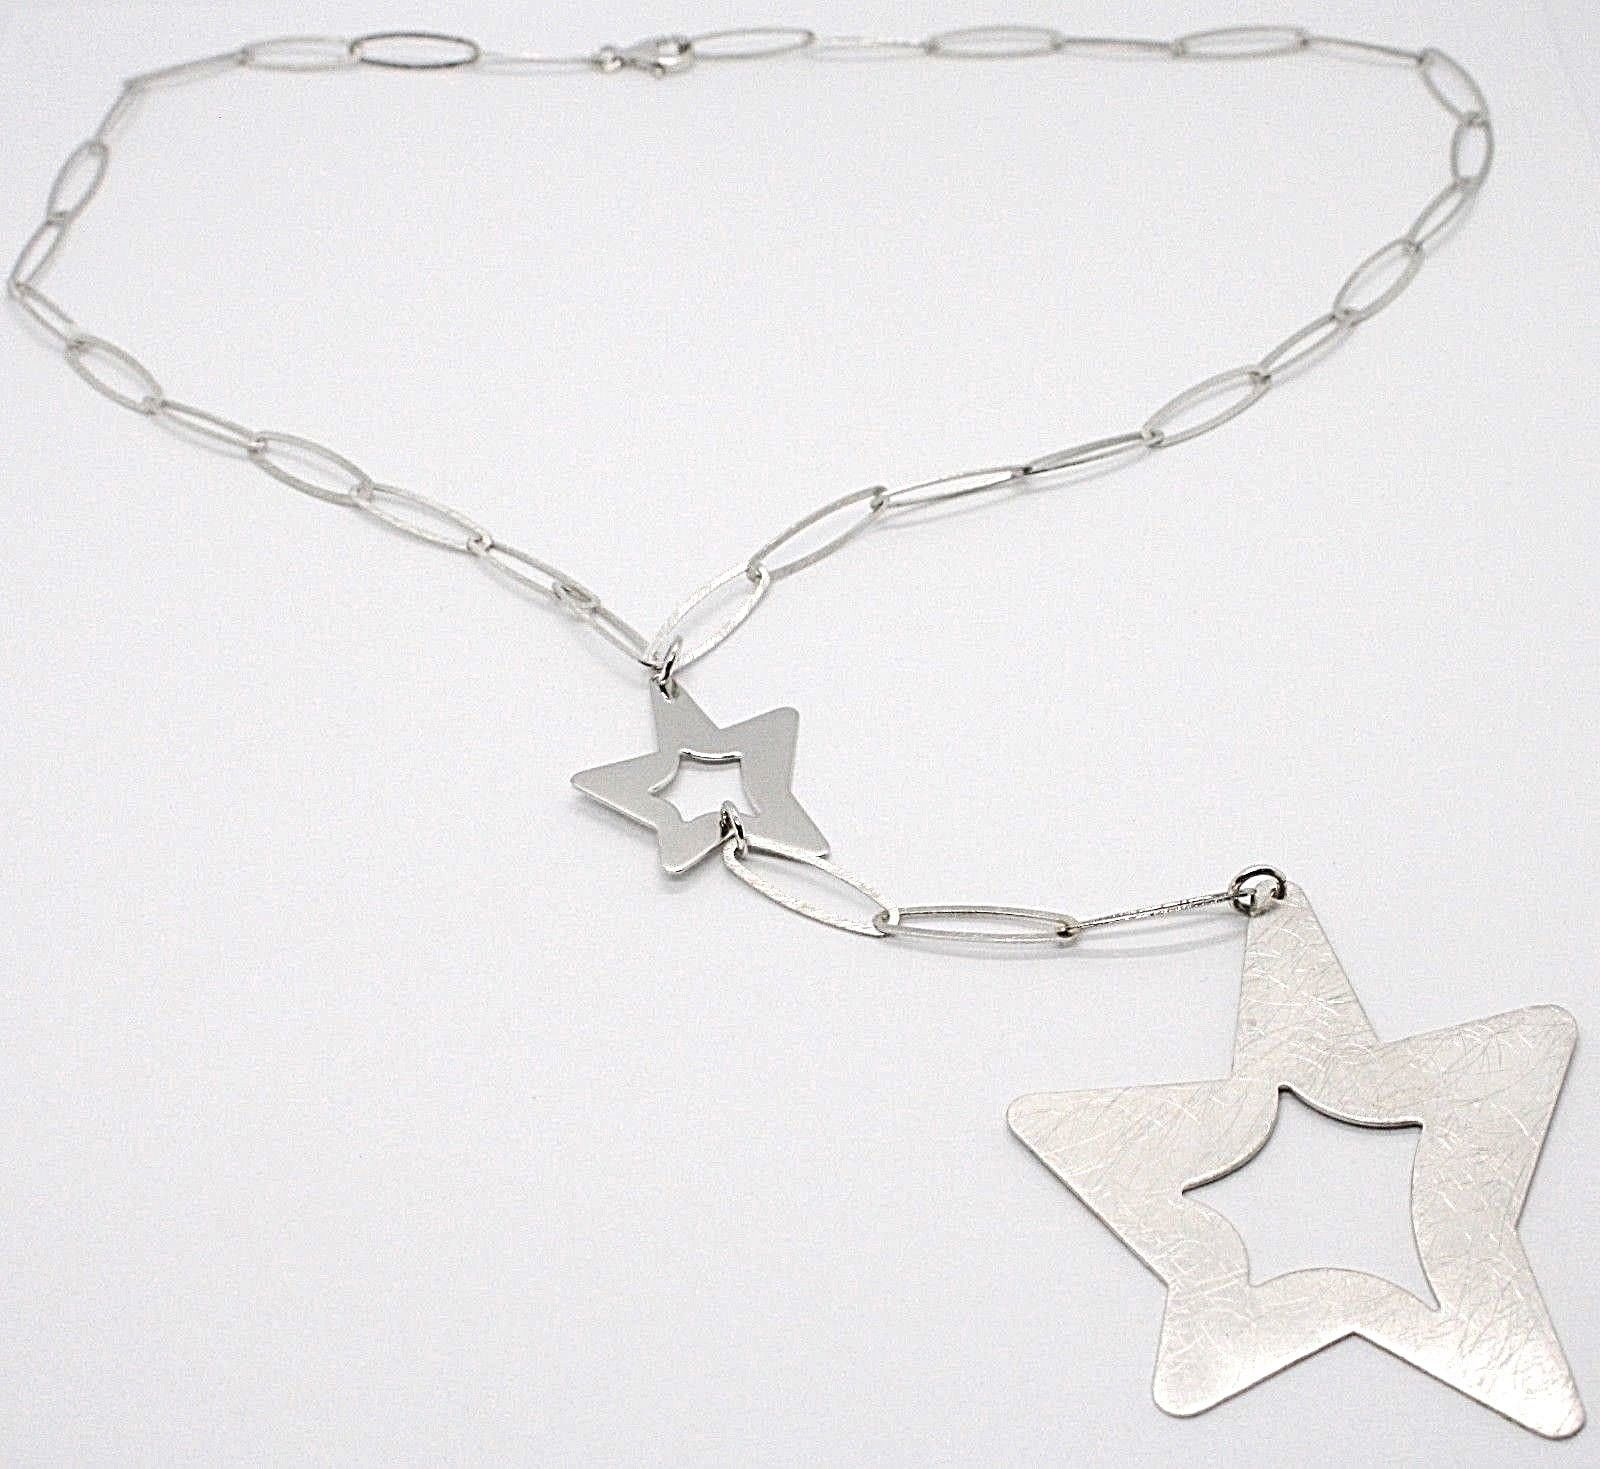 SILVER 925 NECKLACE, CHAIN OVAL, DOUBLE STAR PENDANT WORKED, SATIN